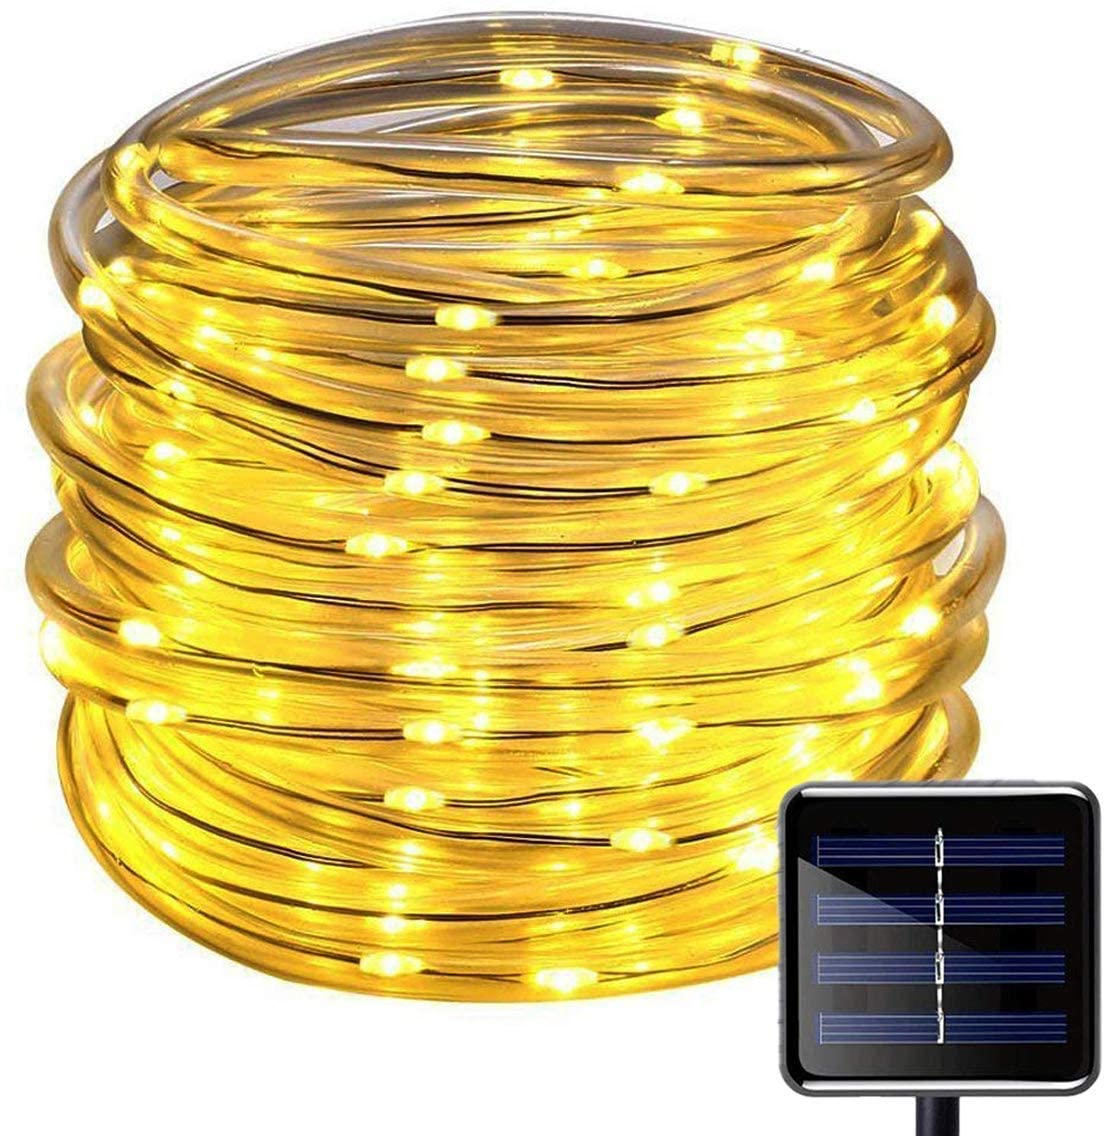 picK-me Solar Rope Lights, 200 LEDs 66ft/20M 2Modes Waterproof Solar String Copper Wire Light, Outdoor Rope Lights for Garden Yard Path Fence Tree Wedding Party Decorative (8 Modes, Warm White)